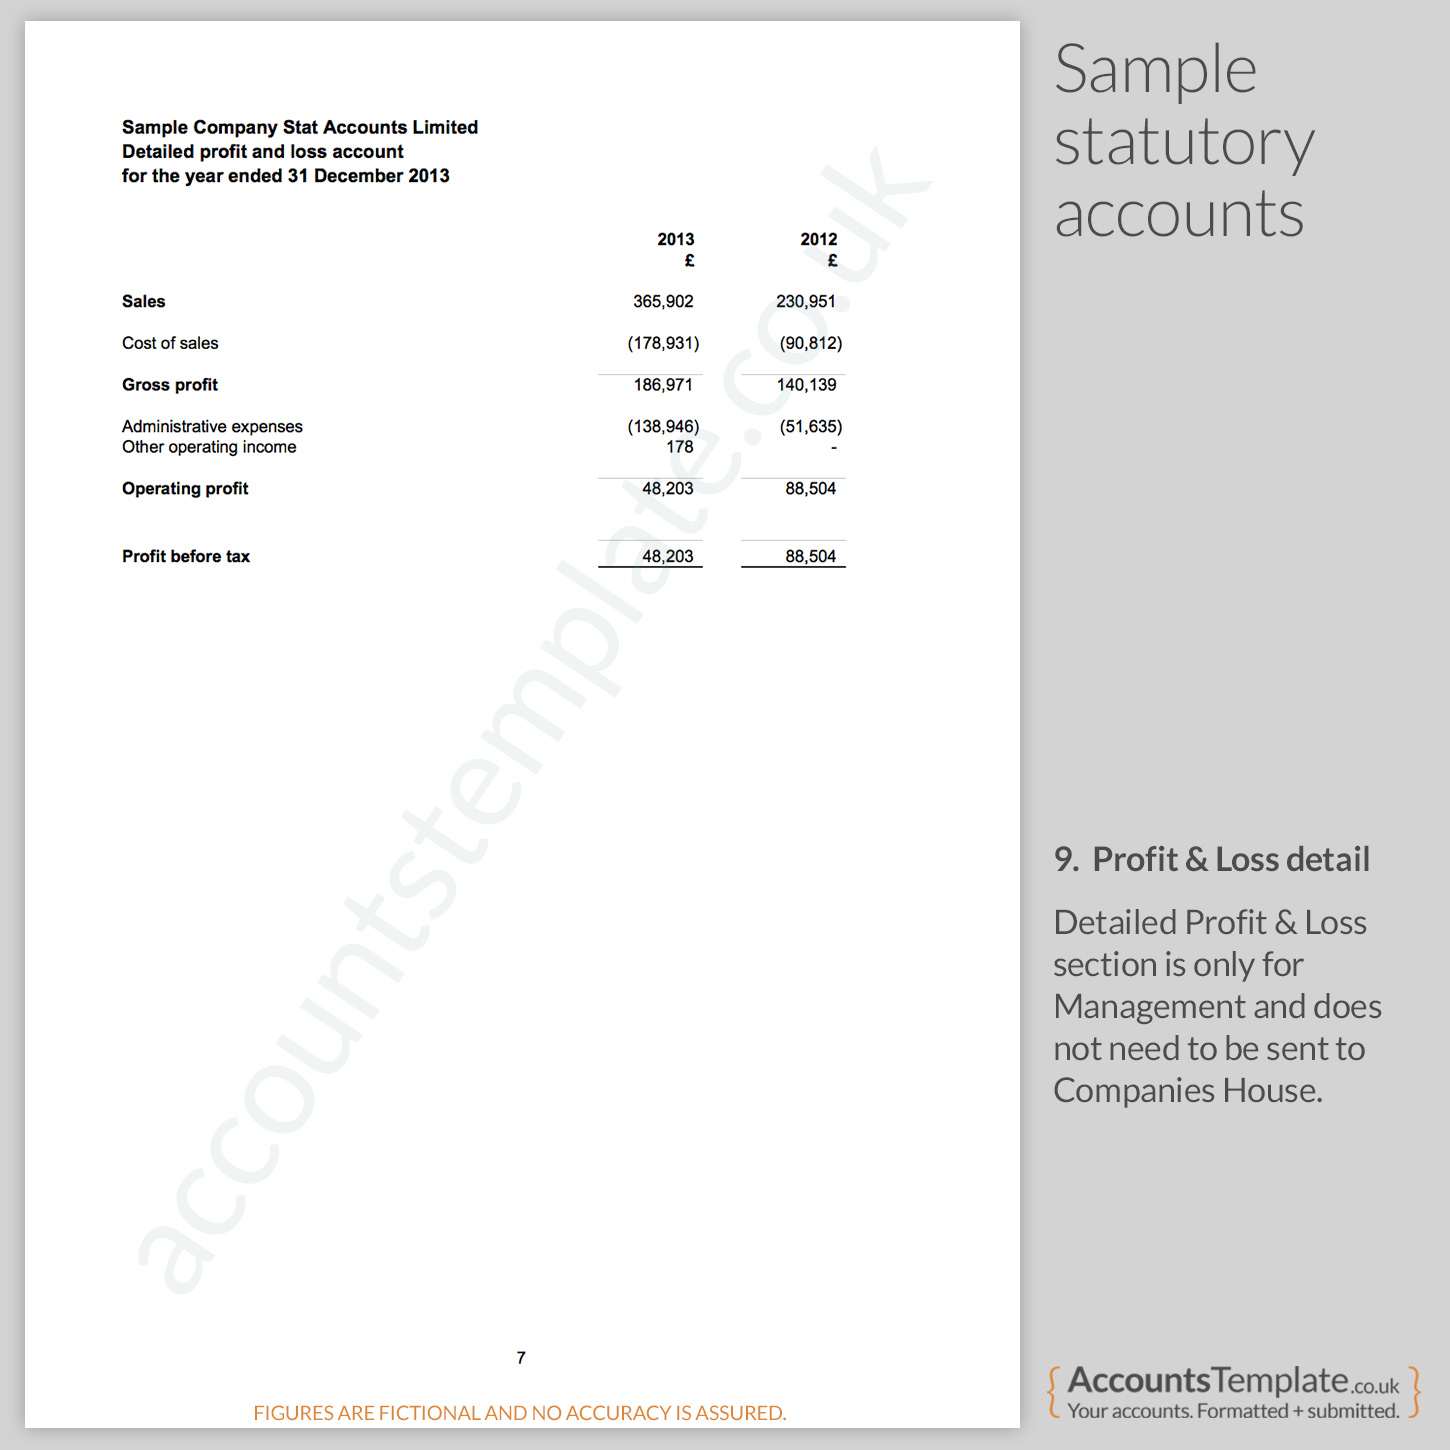 Doc600550 Free Profit and Loss Template for Self Employed – Profit and Loss Statement for Self Employed Template